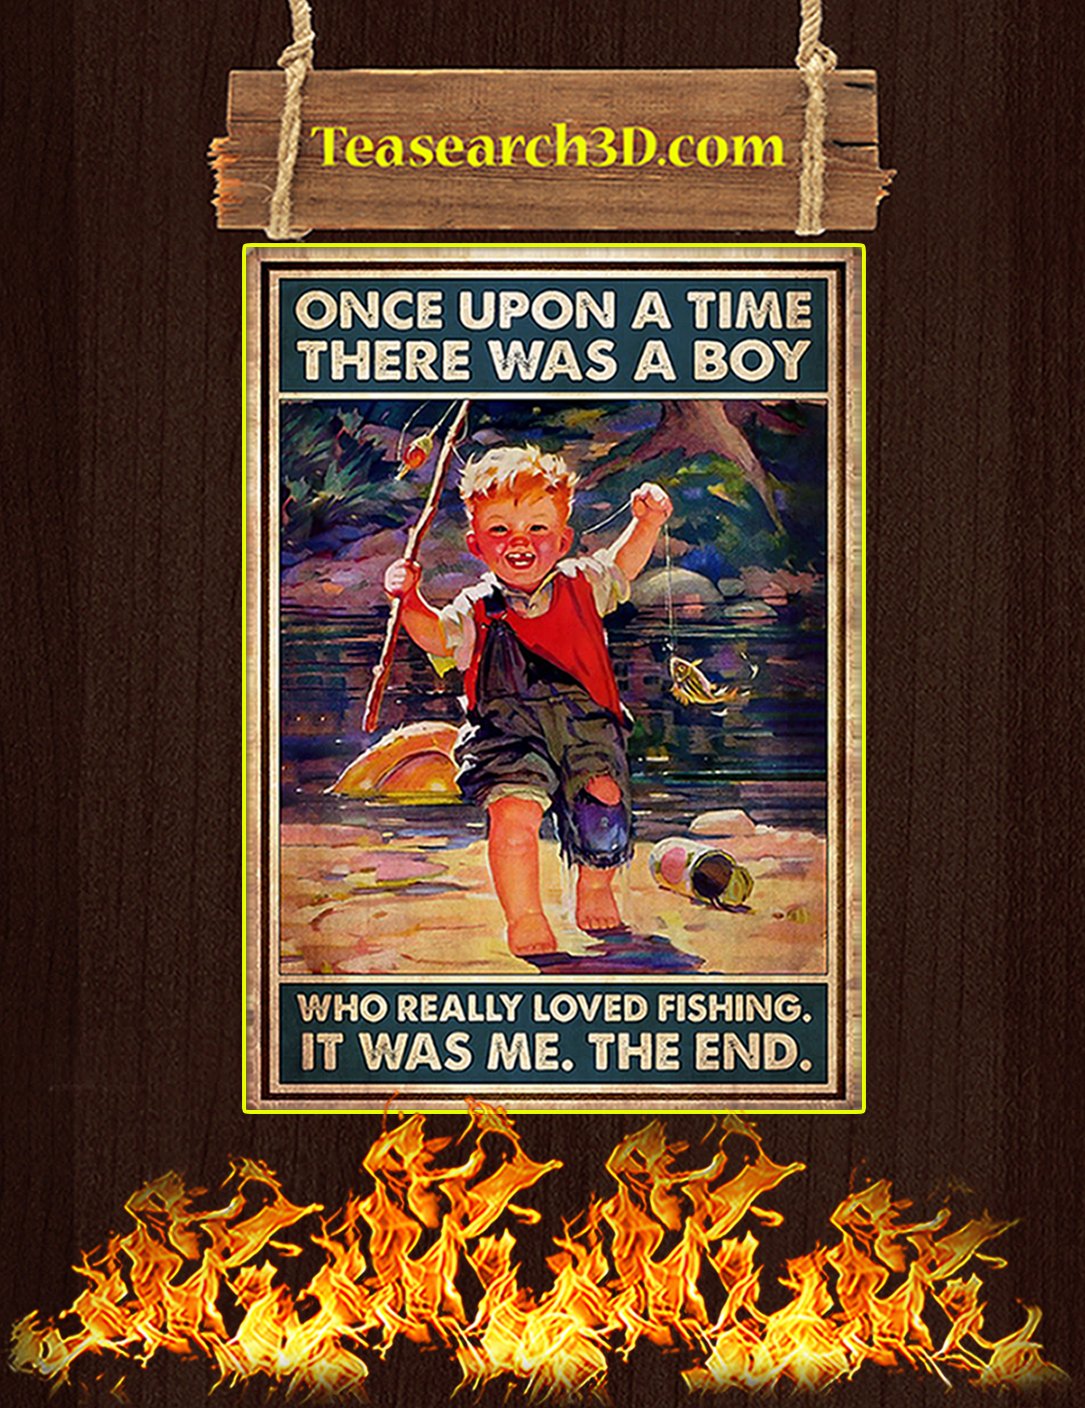 Once upon a time there was a boy who really loved fishing poster A2